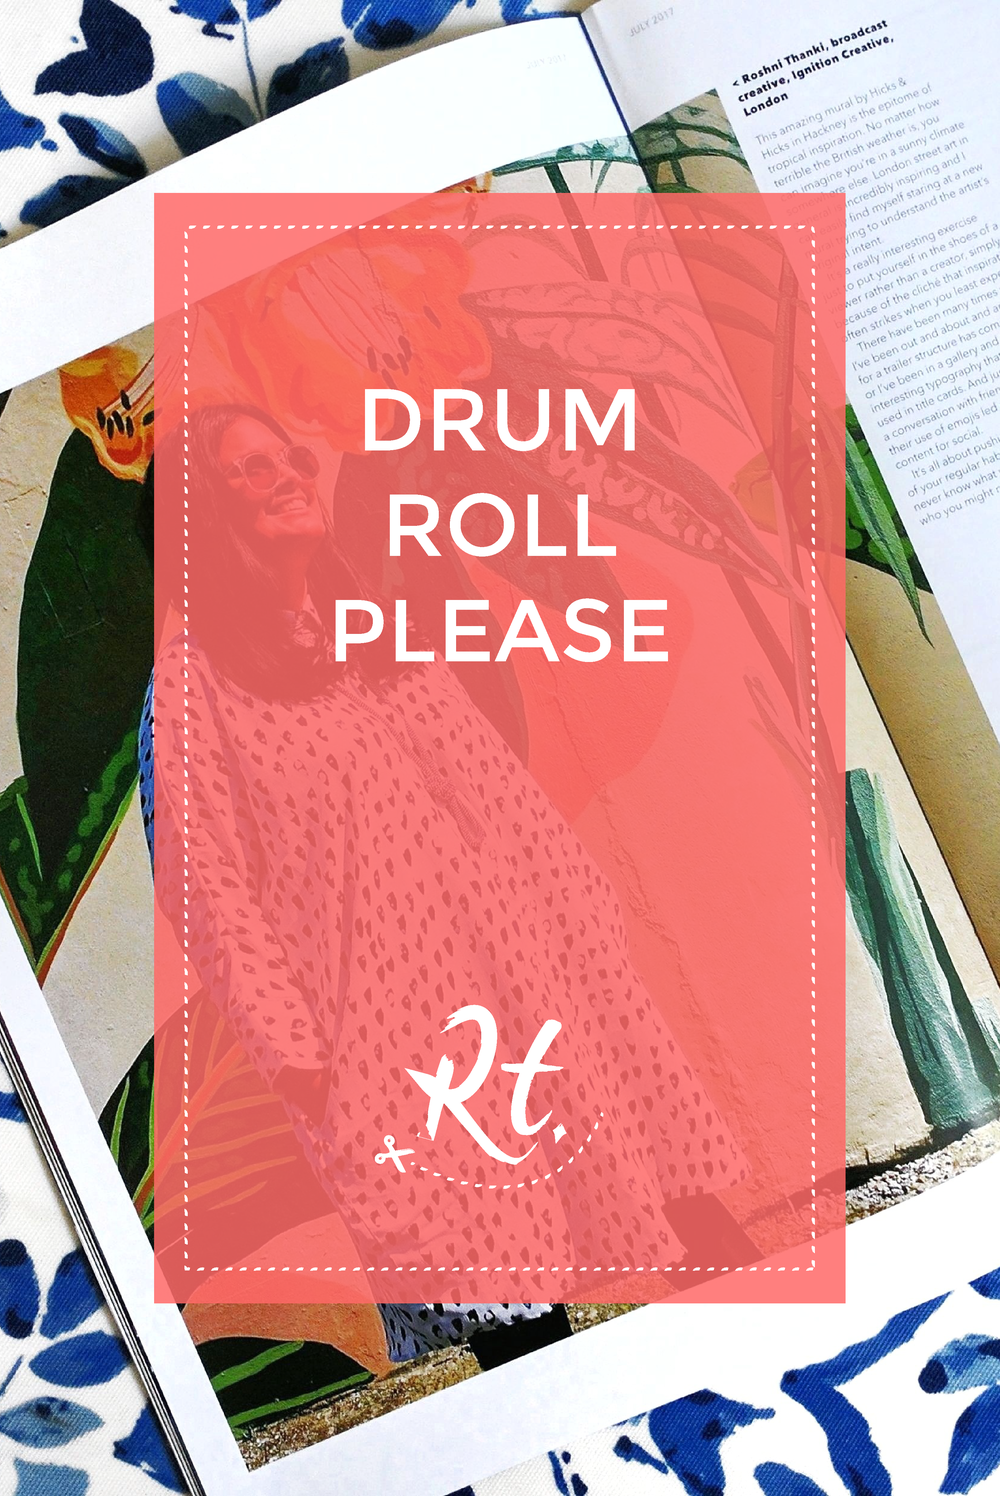 Drum Roll Please by Rosh Thanki, The Drum Magazine article flat lay